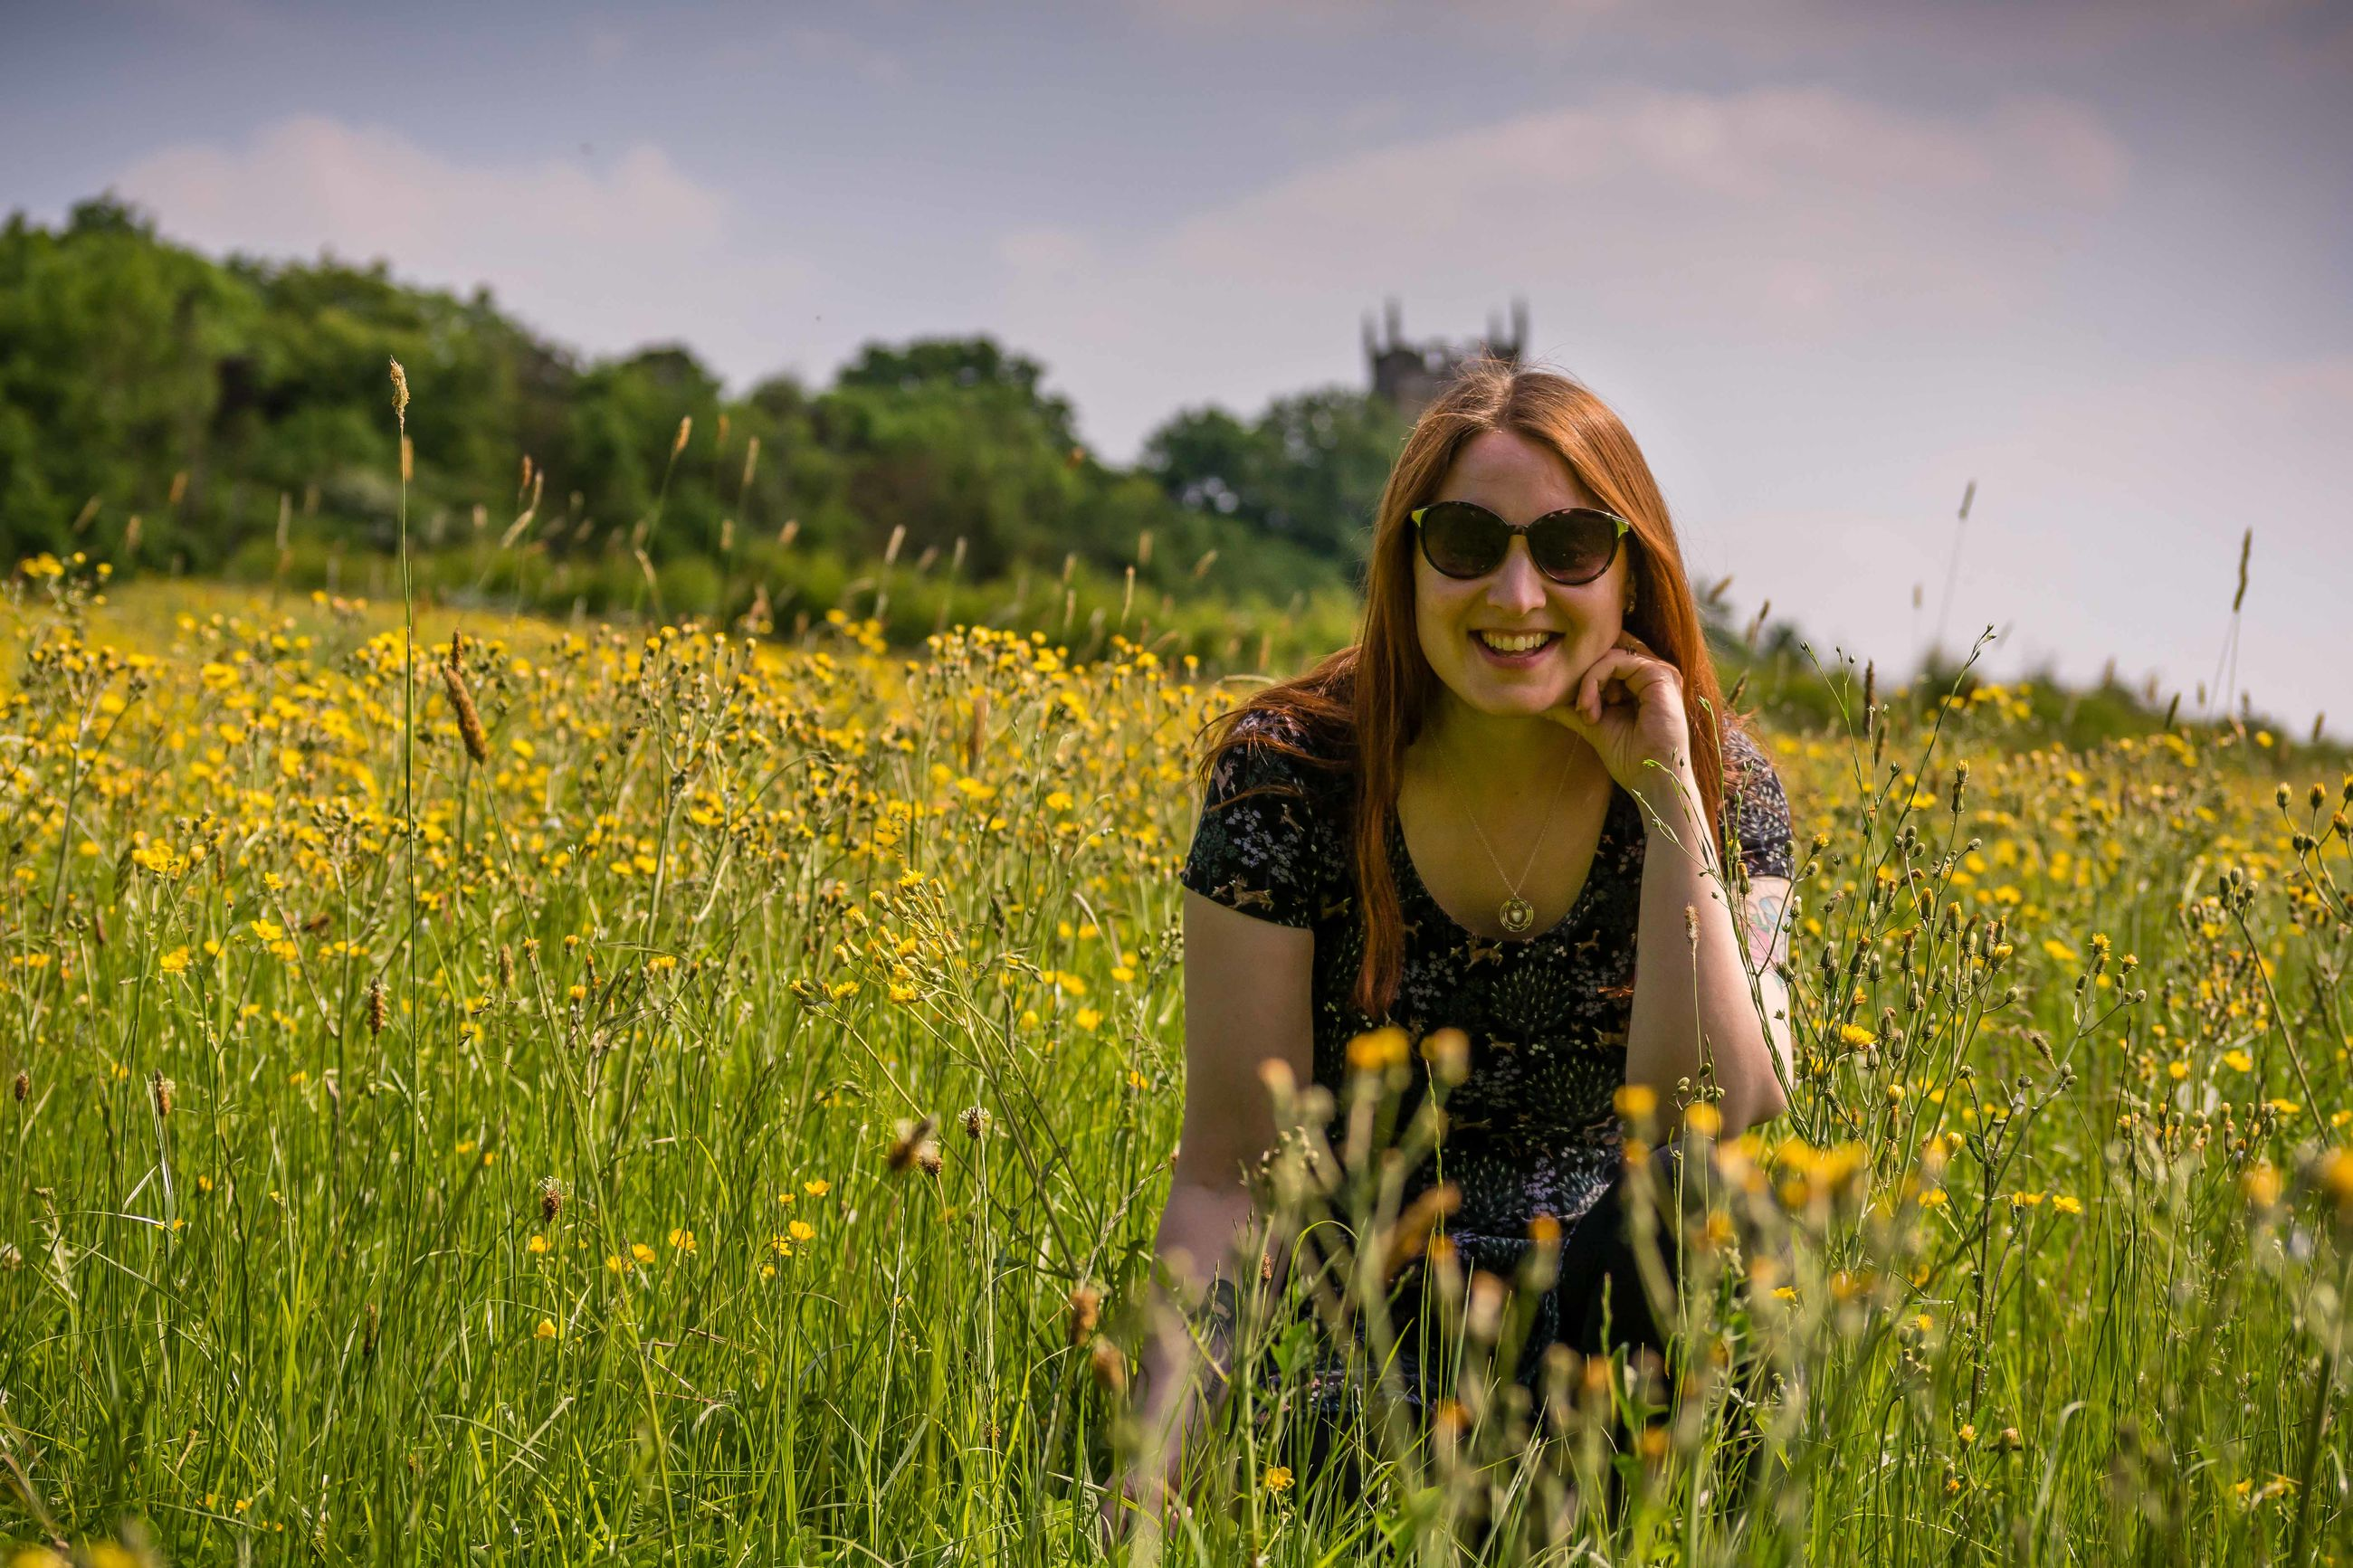 yellow, plant, field, one person, flower, grass, sunglasses, adult, meadow, fashion, nature, land, women, sky, rapeseed, landscape, glasses, rural scene, smiling, young adult, flowering plant, sunlight, agriculture, long hair, happiness, hairstyle, beauty in nature, rural area, front view, summer, portrait, environment, leisure activity, emotion, lifestyles, canola, outdoors, plain, three quarter length, crop, casual clothing, growth, prairie, day, clothing, green, natural environment, grassland, enjoyment, freshness, cheerful, tranquility, female, looking at camera, morning, mustard, springtime, autumn, carefree, wildflower, standing, holiday, brown hair, waist up, vacation, trip, blond hair, relaxation, cloud, food, teeth